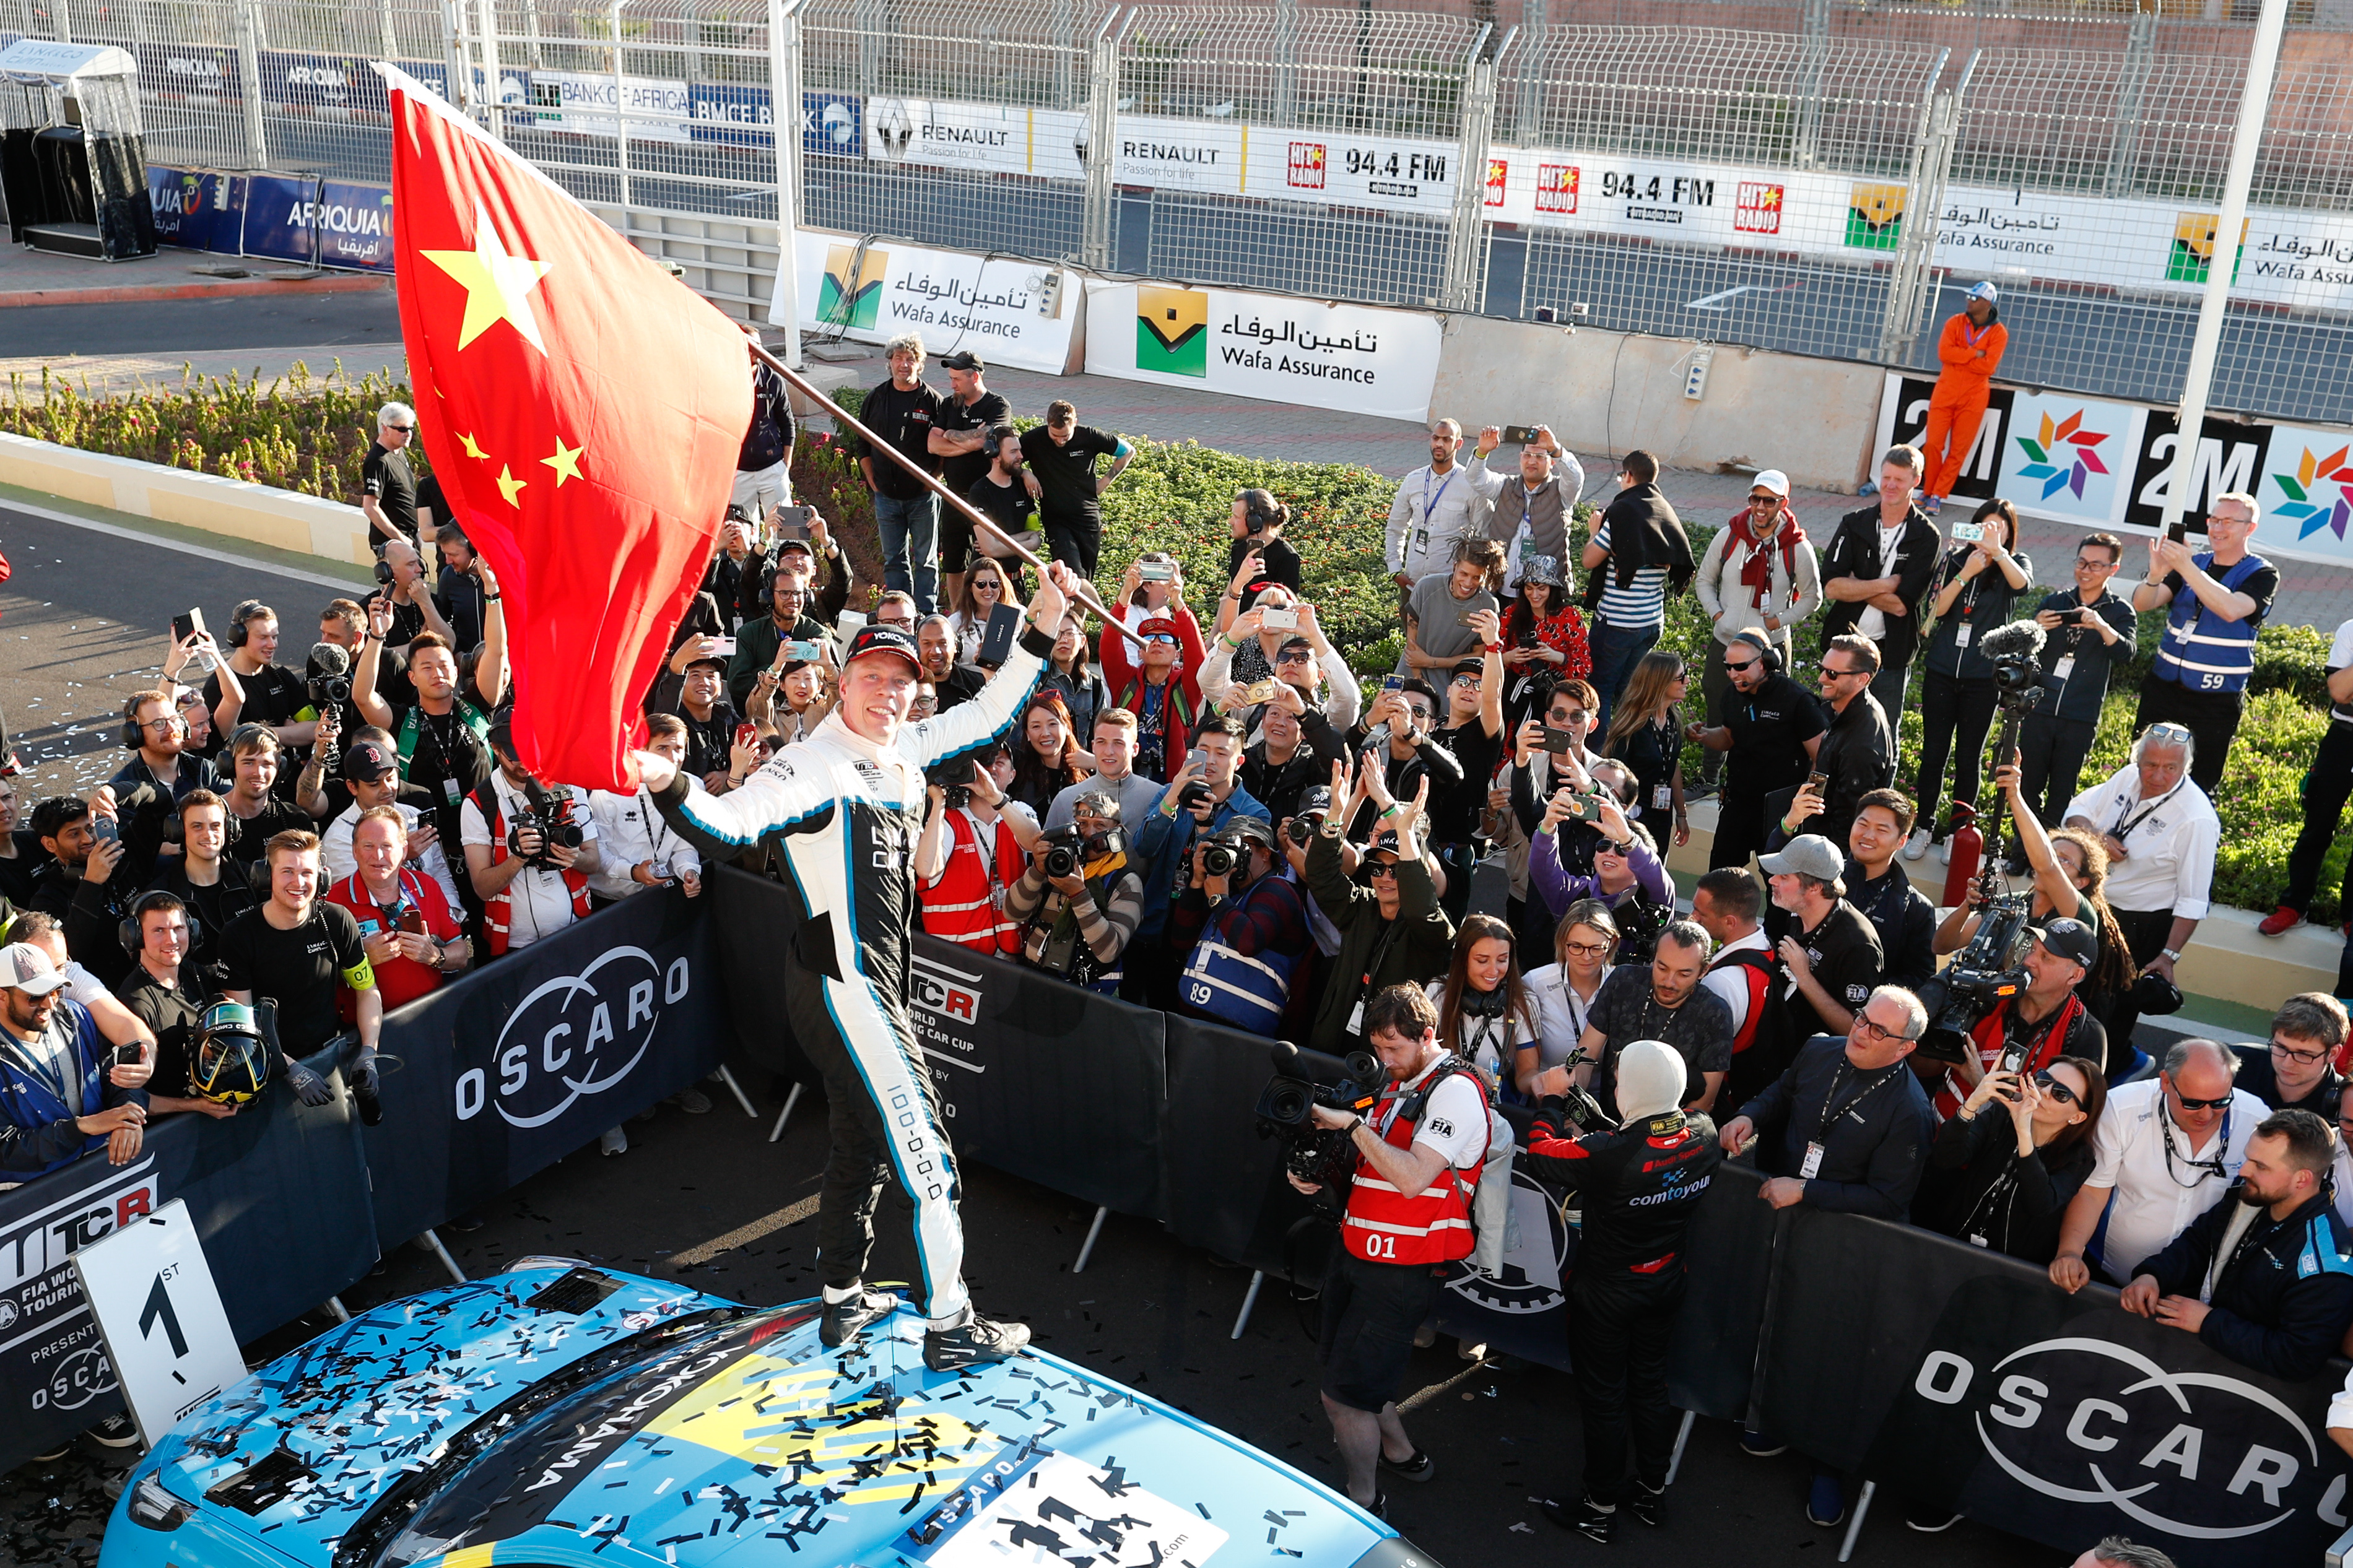 WTCR 2019 the story so far: Rounds 1-3, Morocco